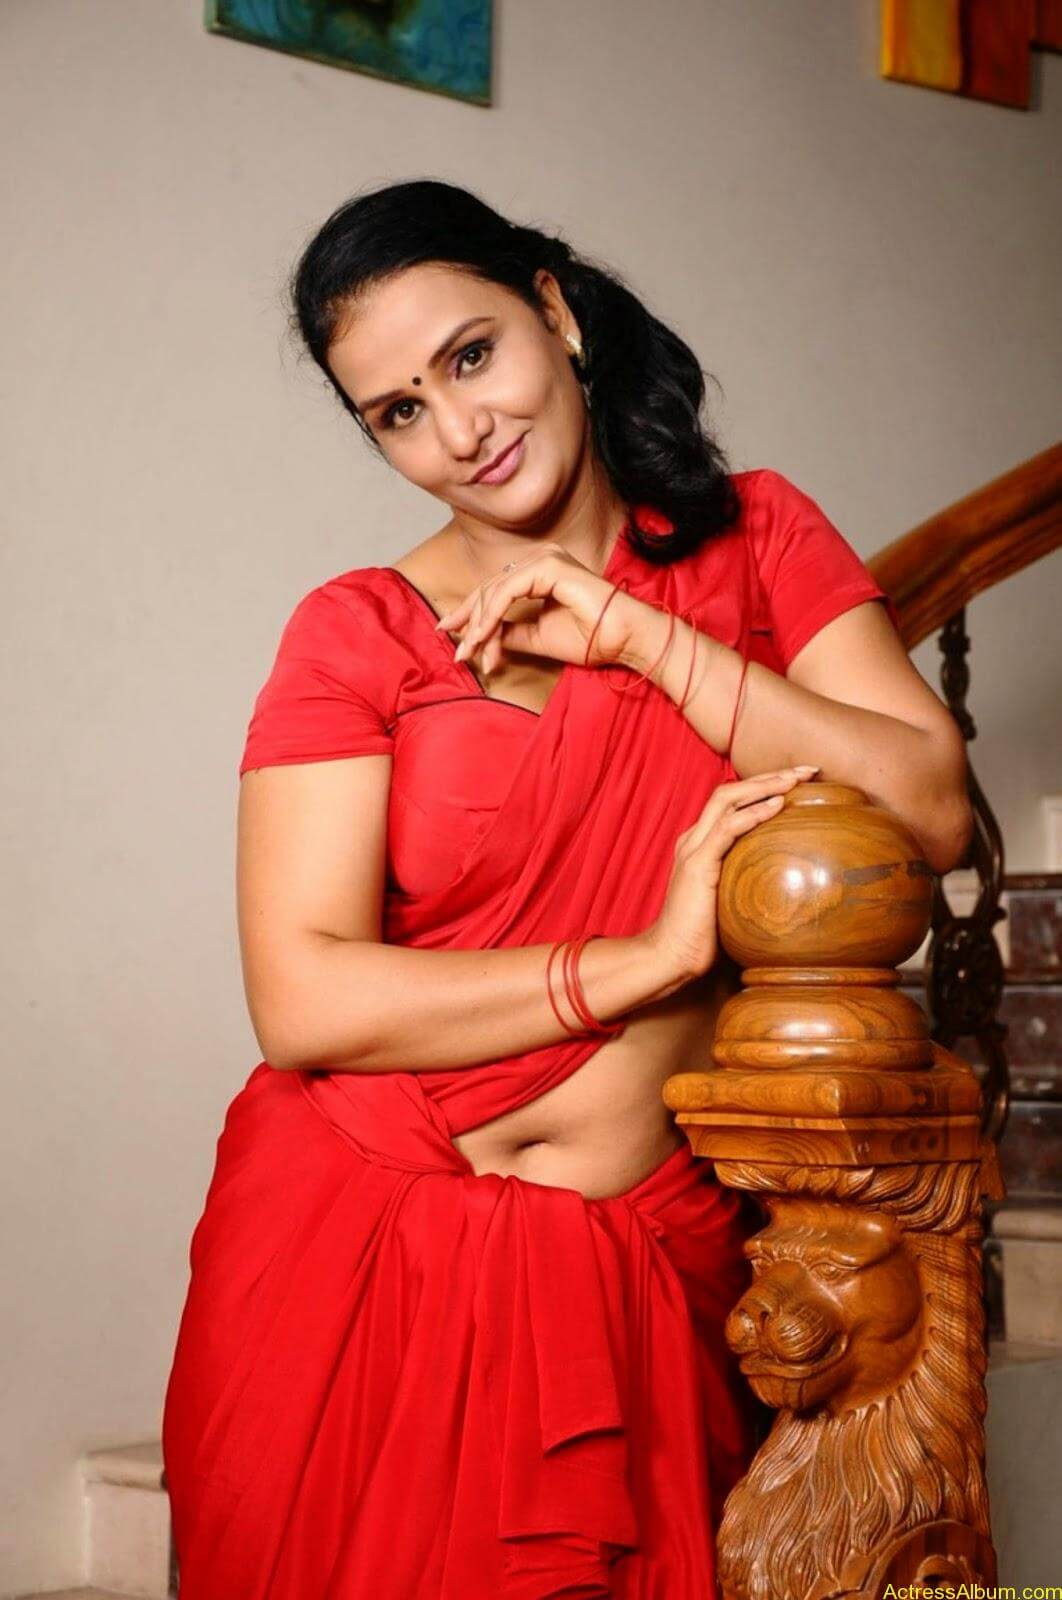 ACTRESS APOORVA VERY HOT IN RED SAREE PHOTO COLLECTION 11